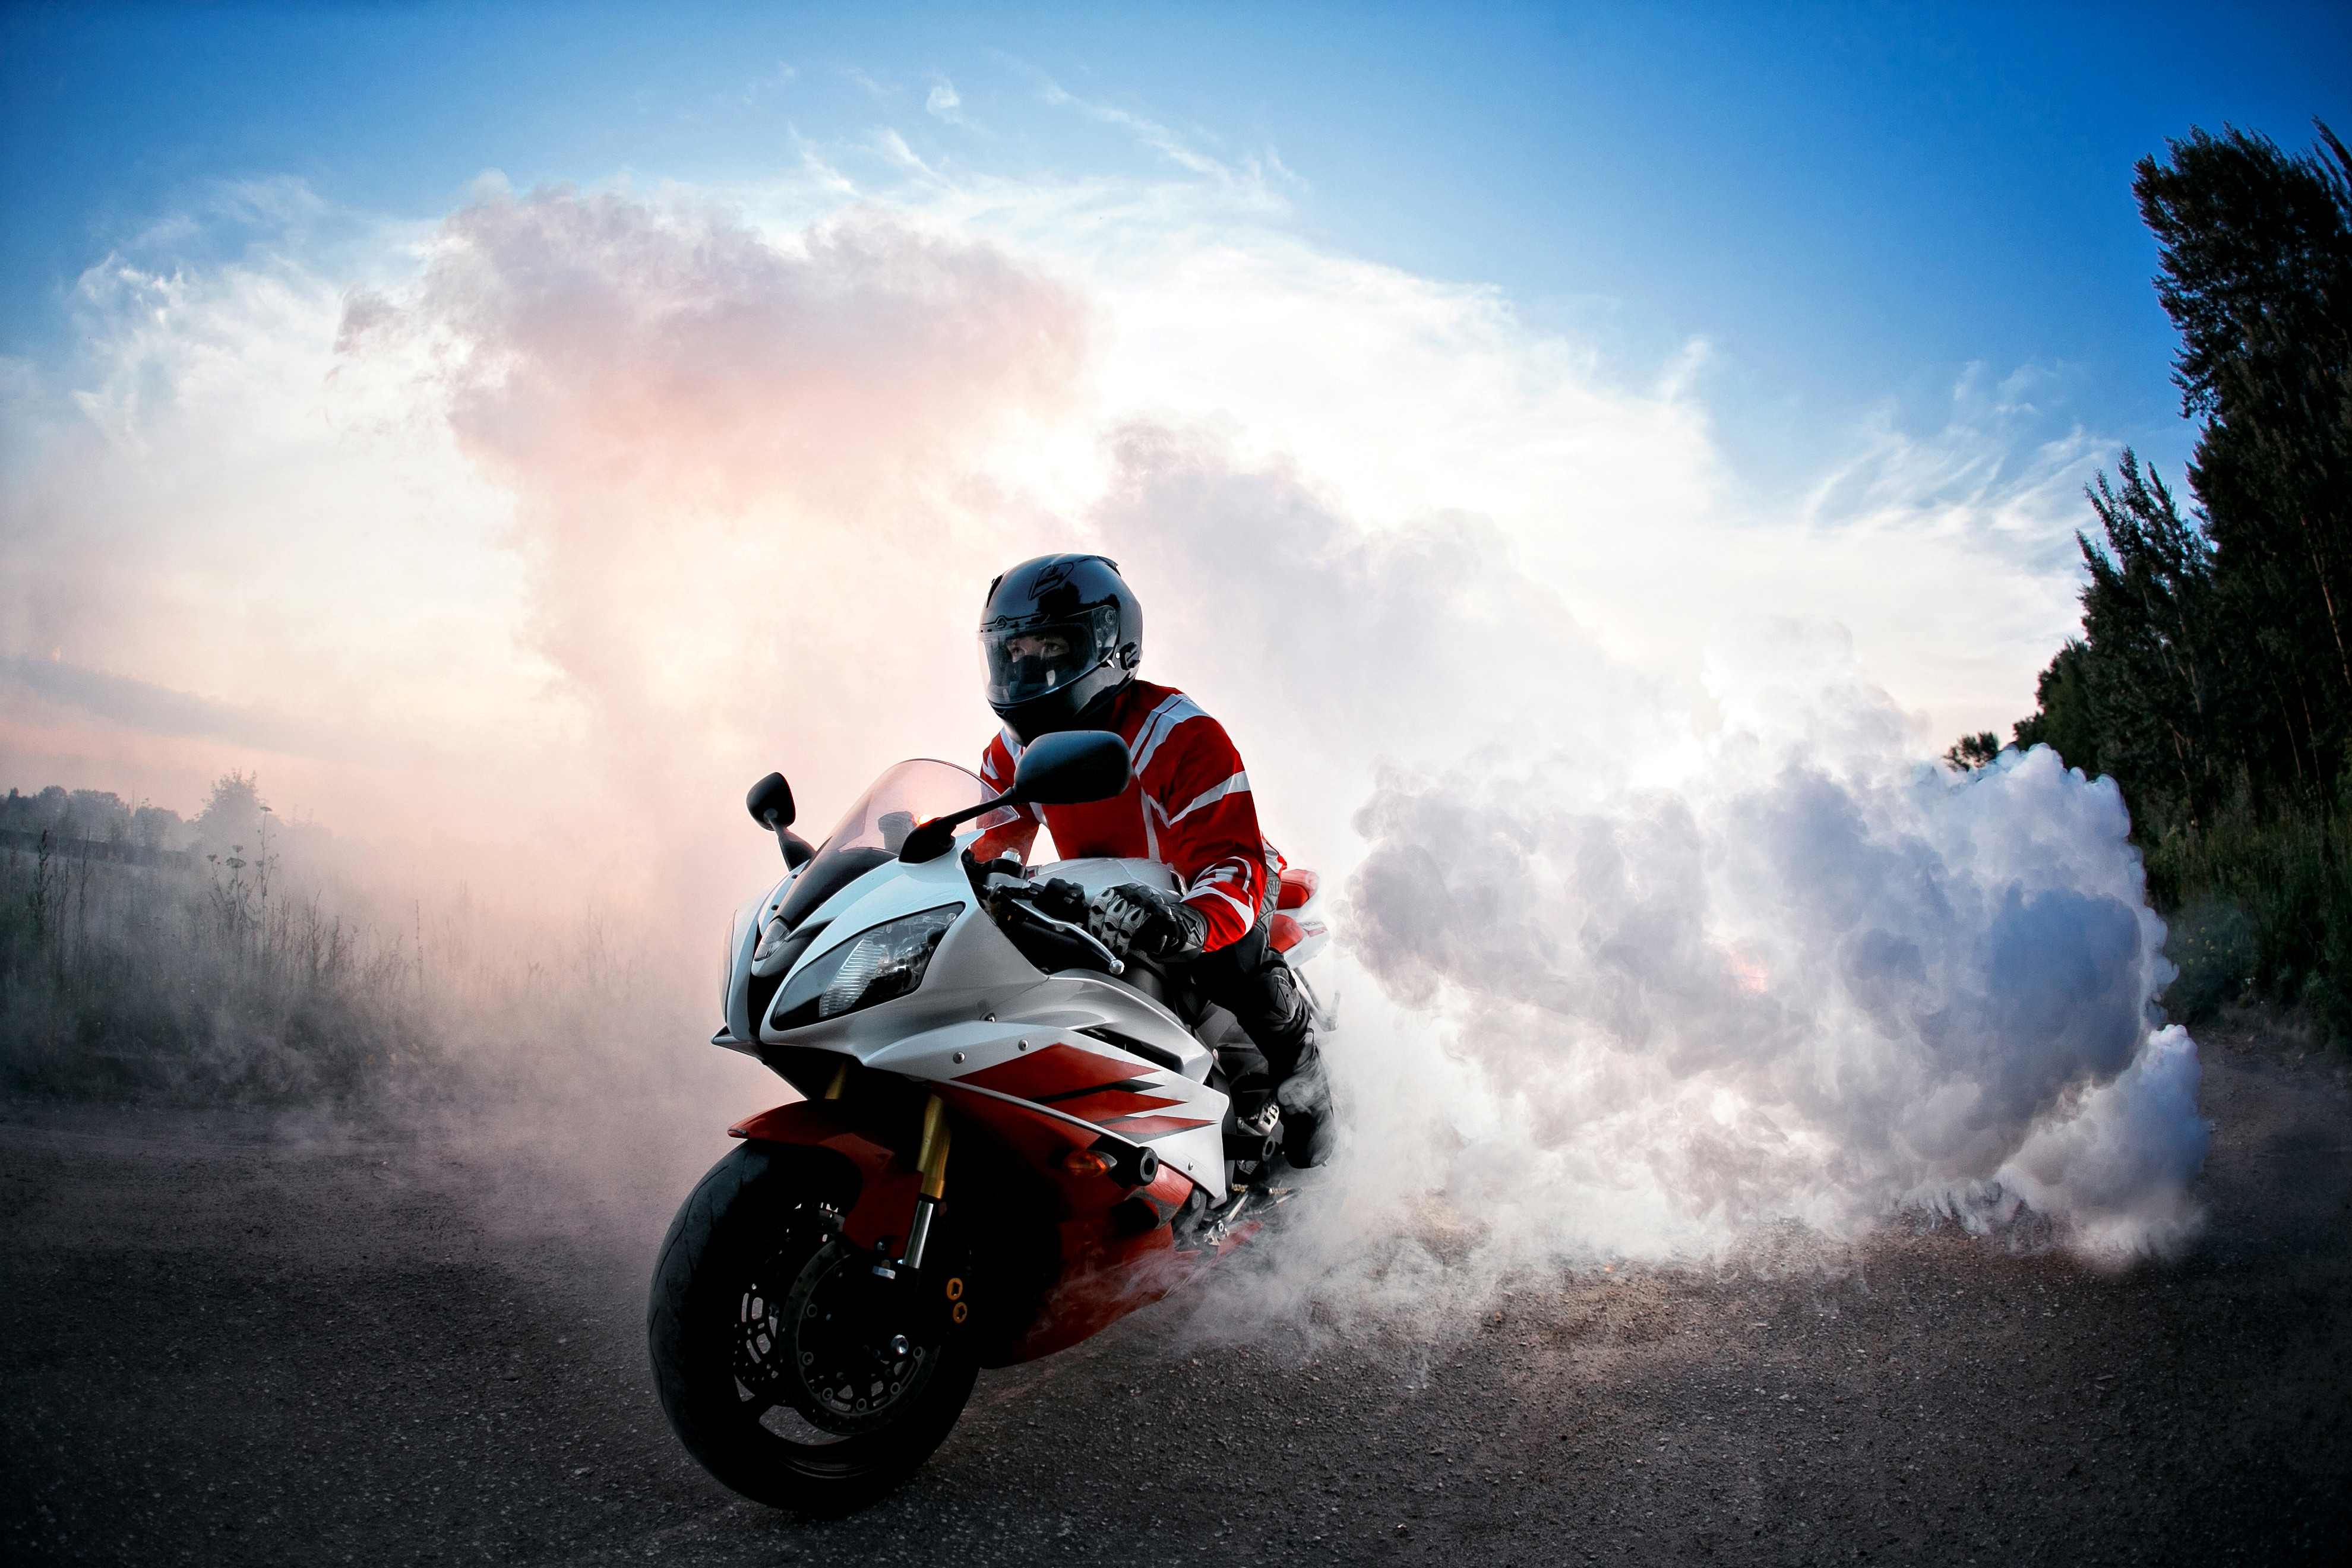 Yamaha R6 Smoke Hd Bikes 4k Wallpapers Images